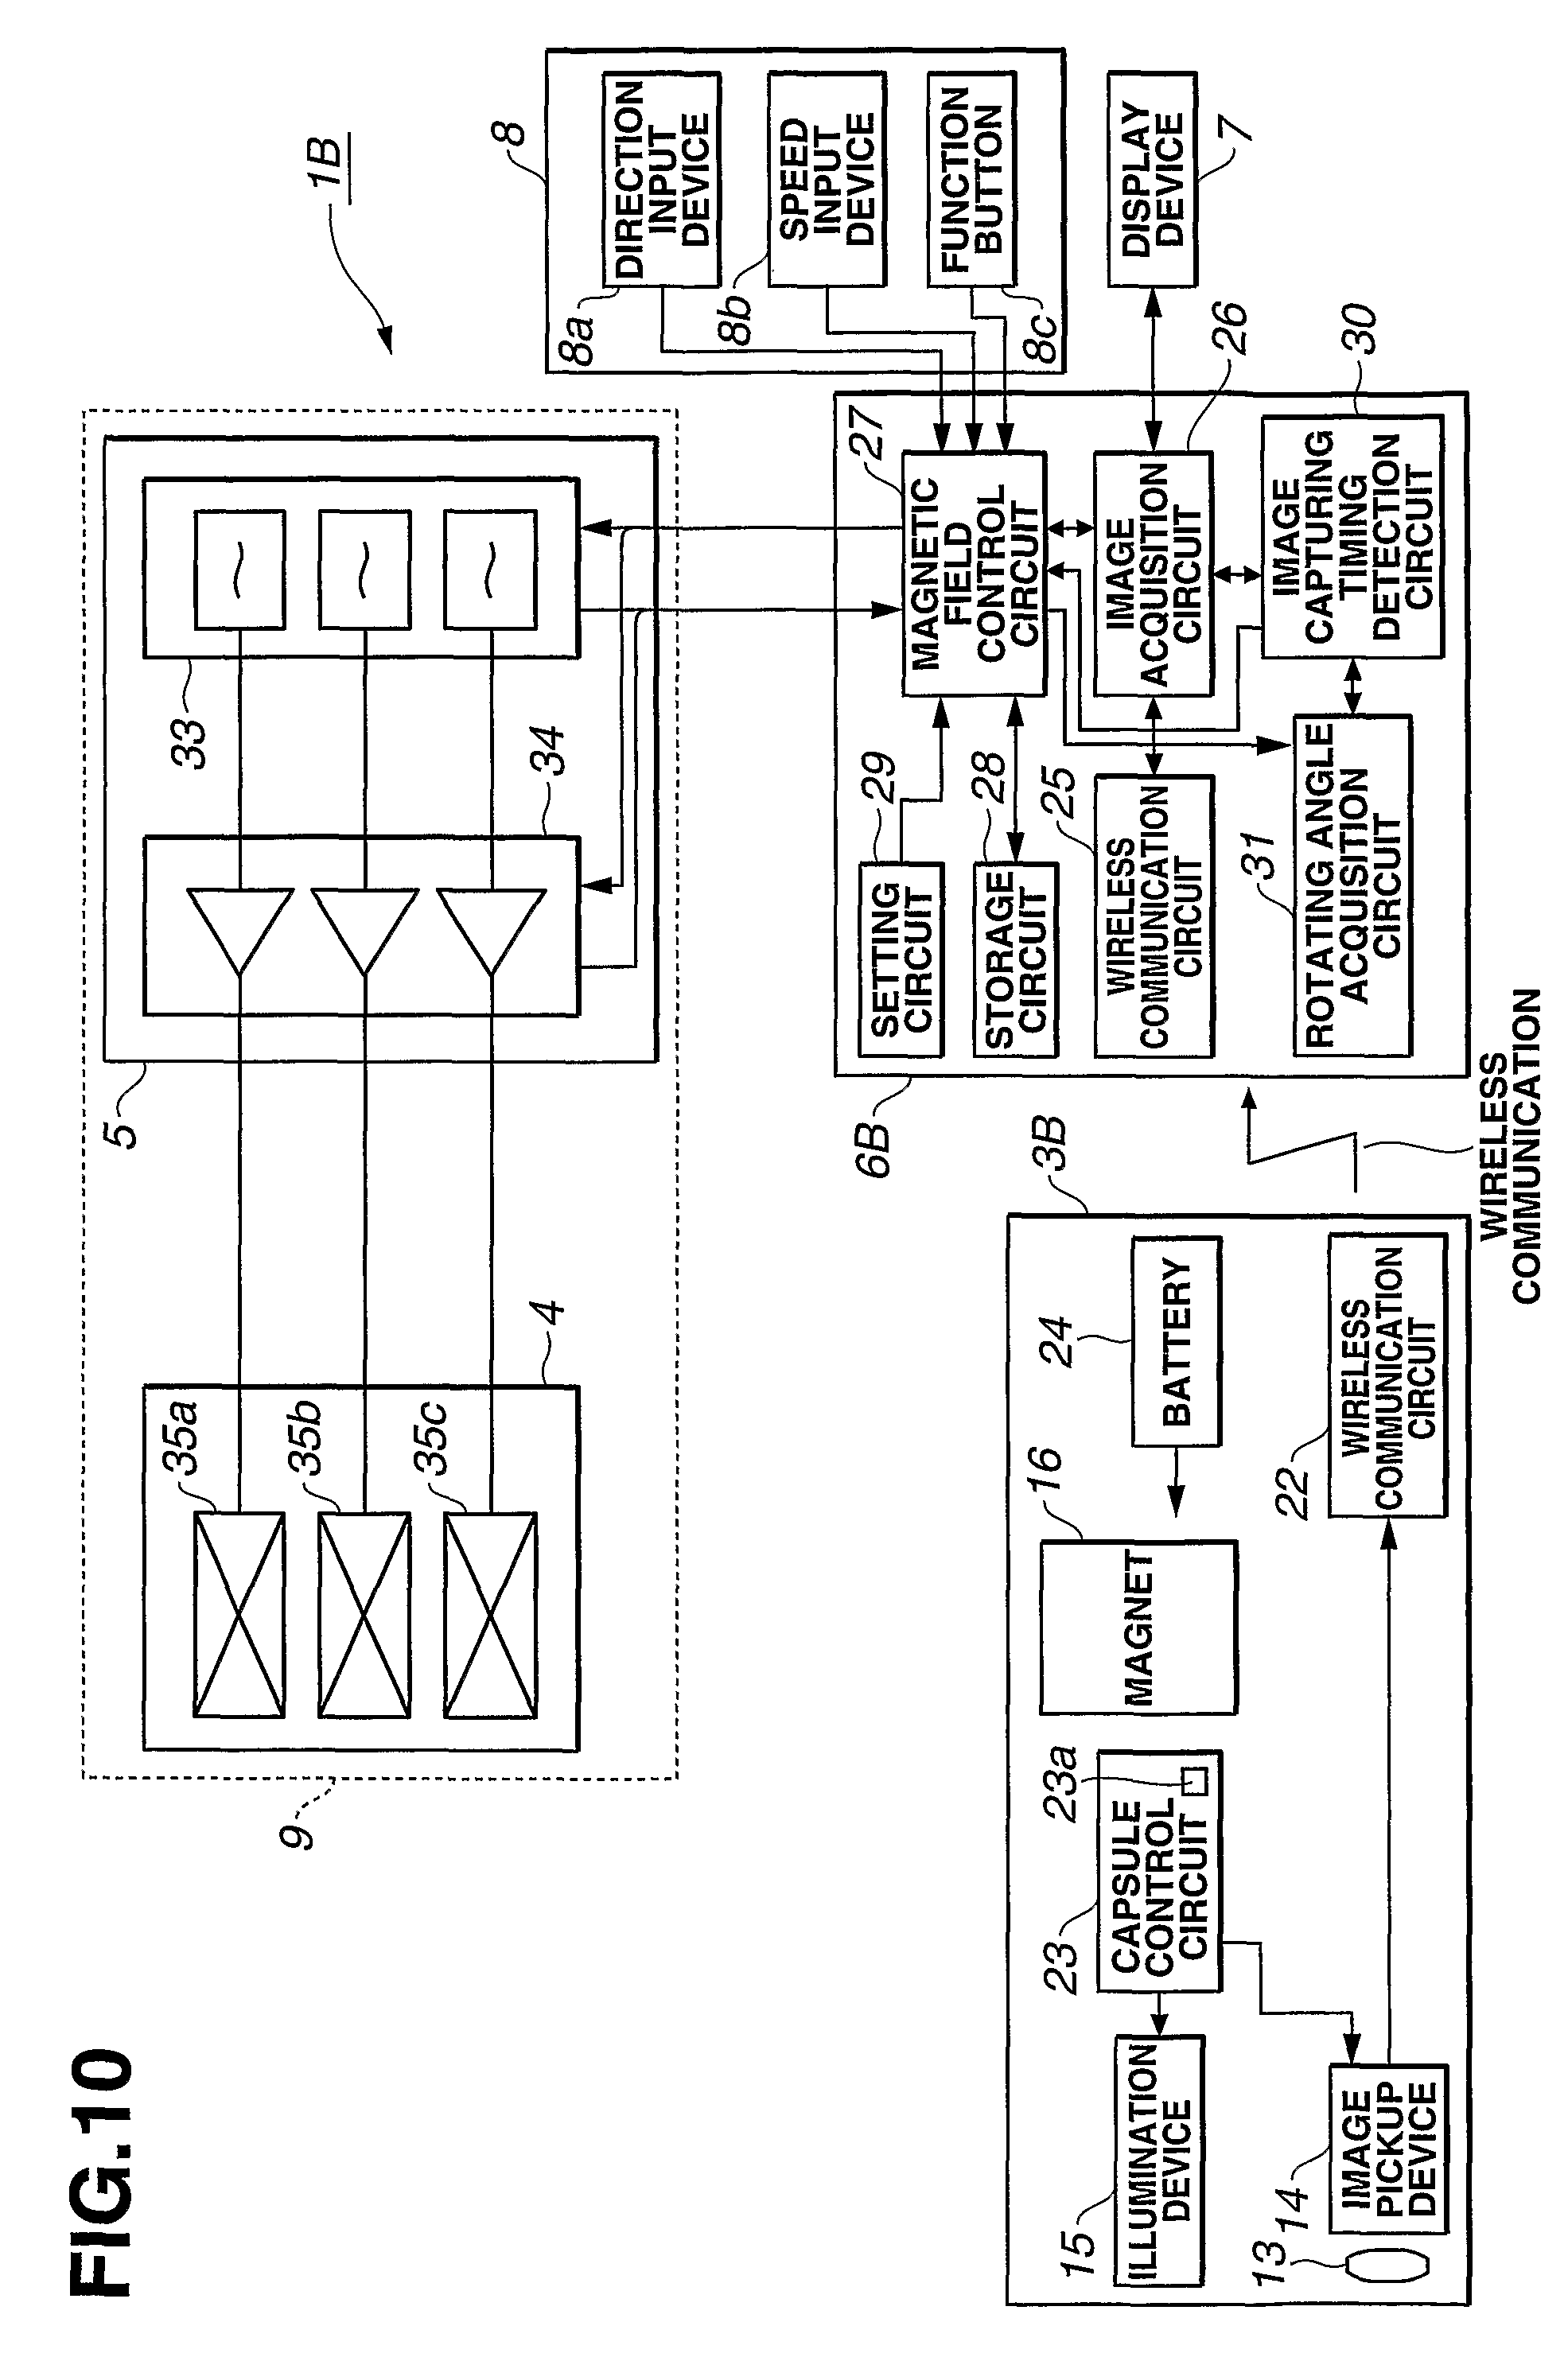 Patent Us8038600 Medical System Google Patents Geomagnetic Field Detector Circuit Drawing